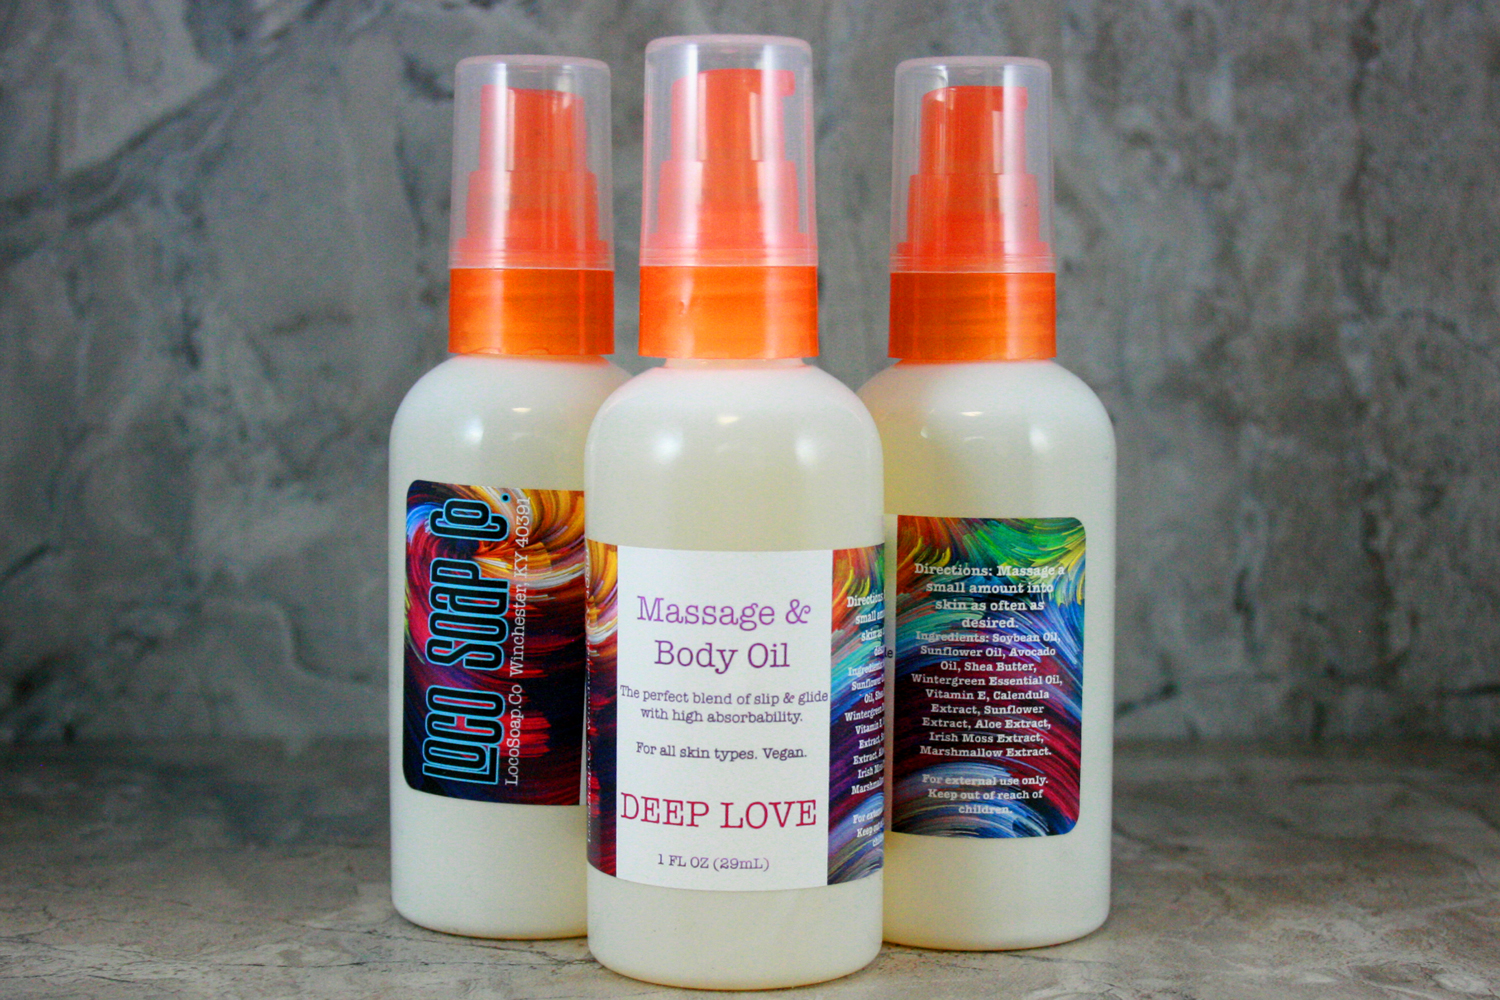 Deep Love Massage & Body Oil